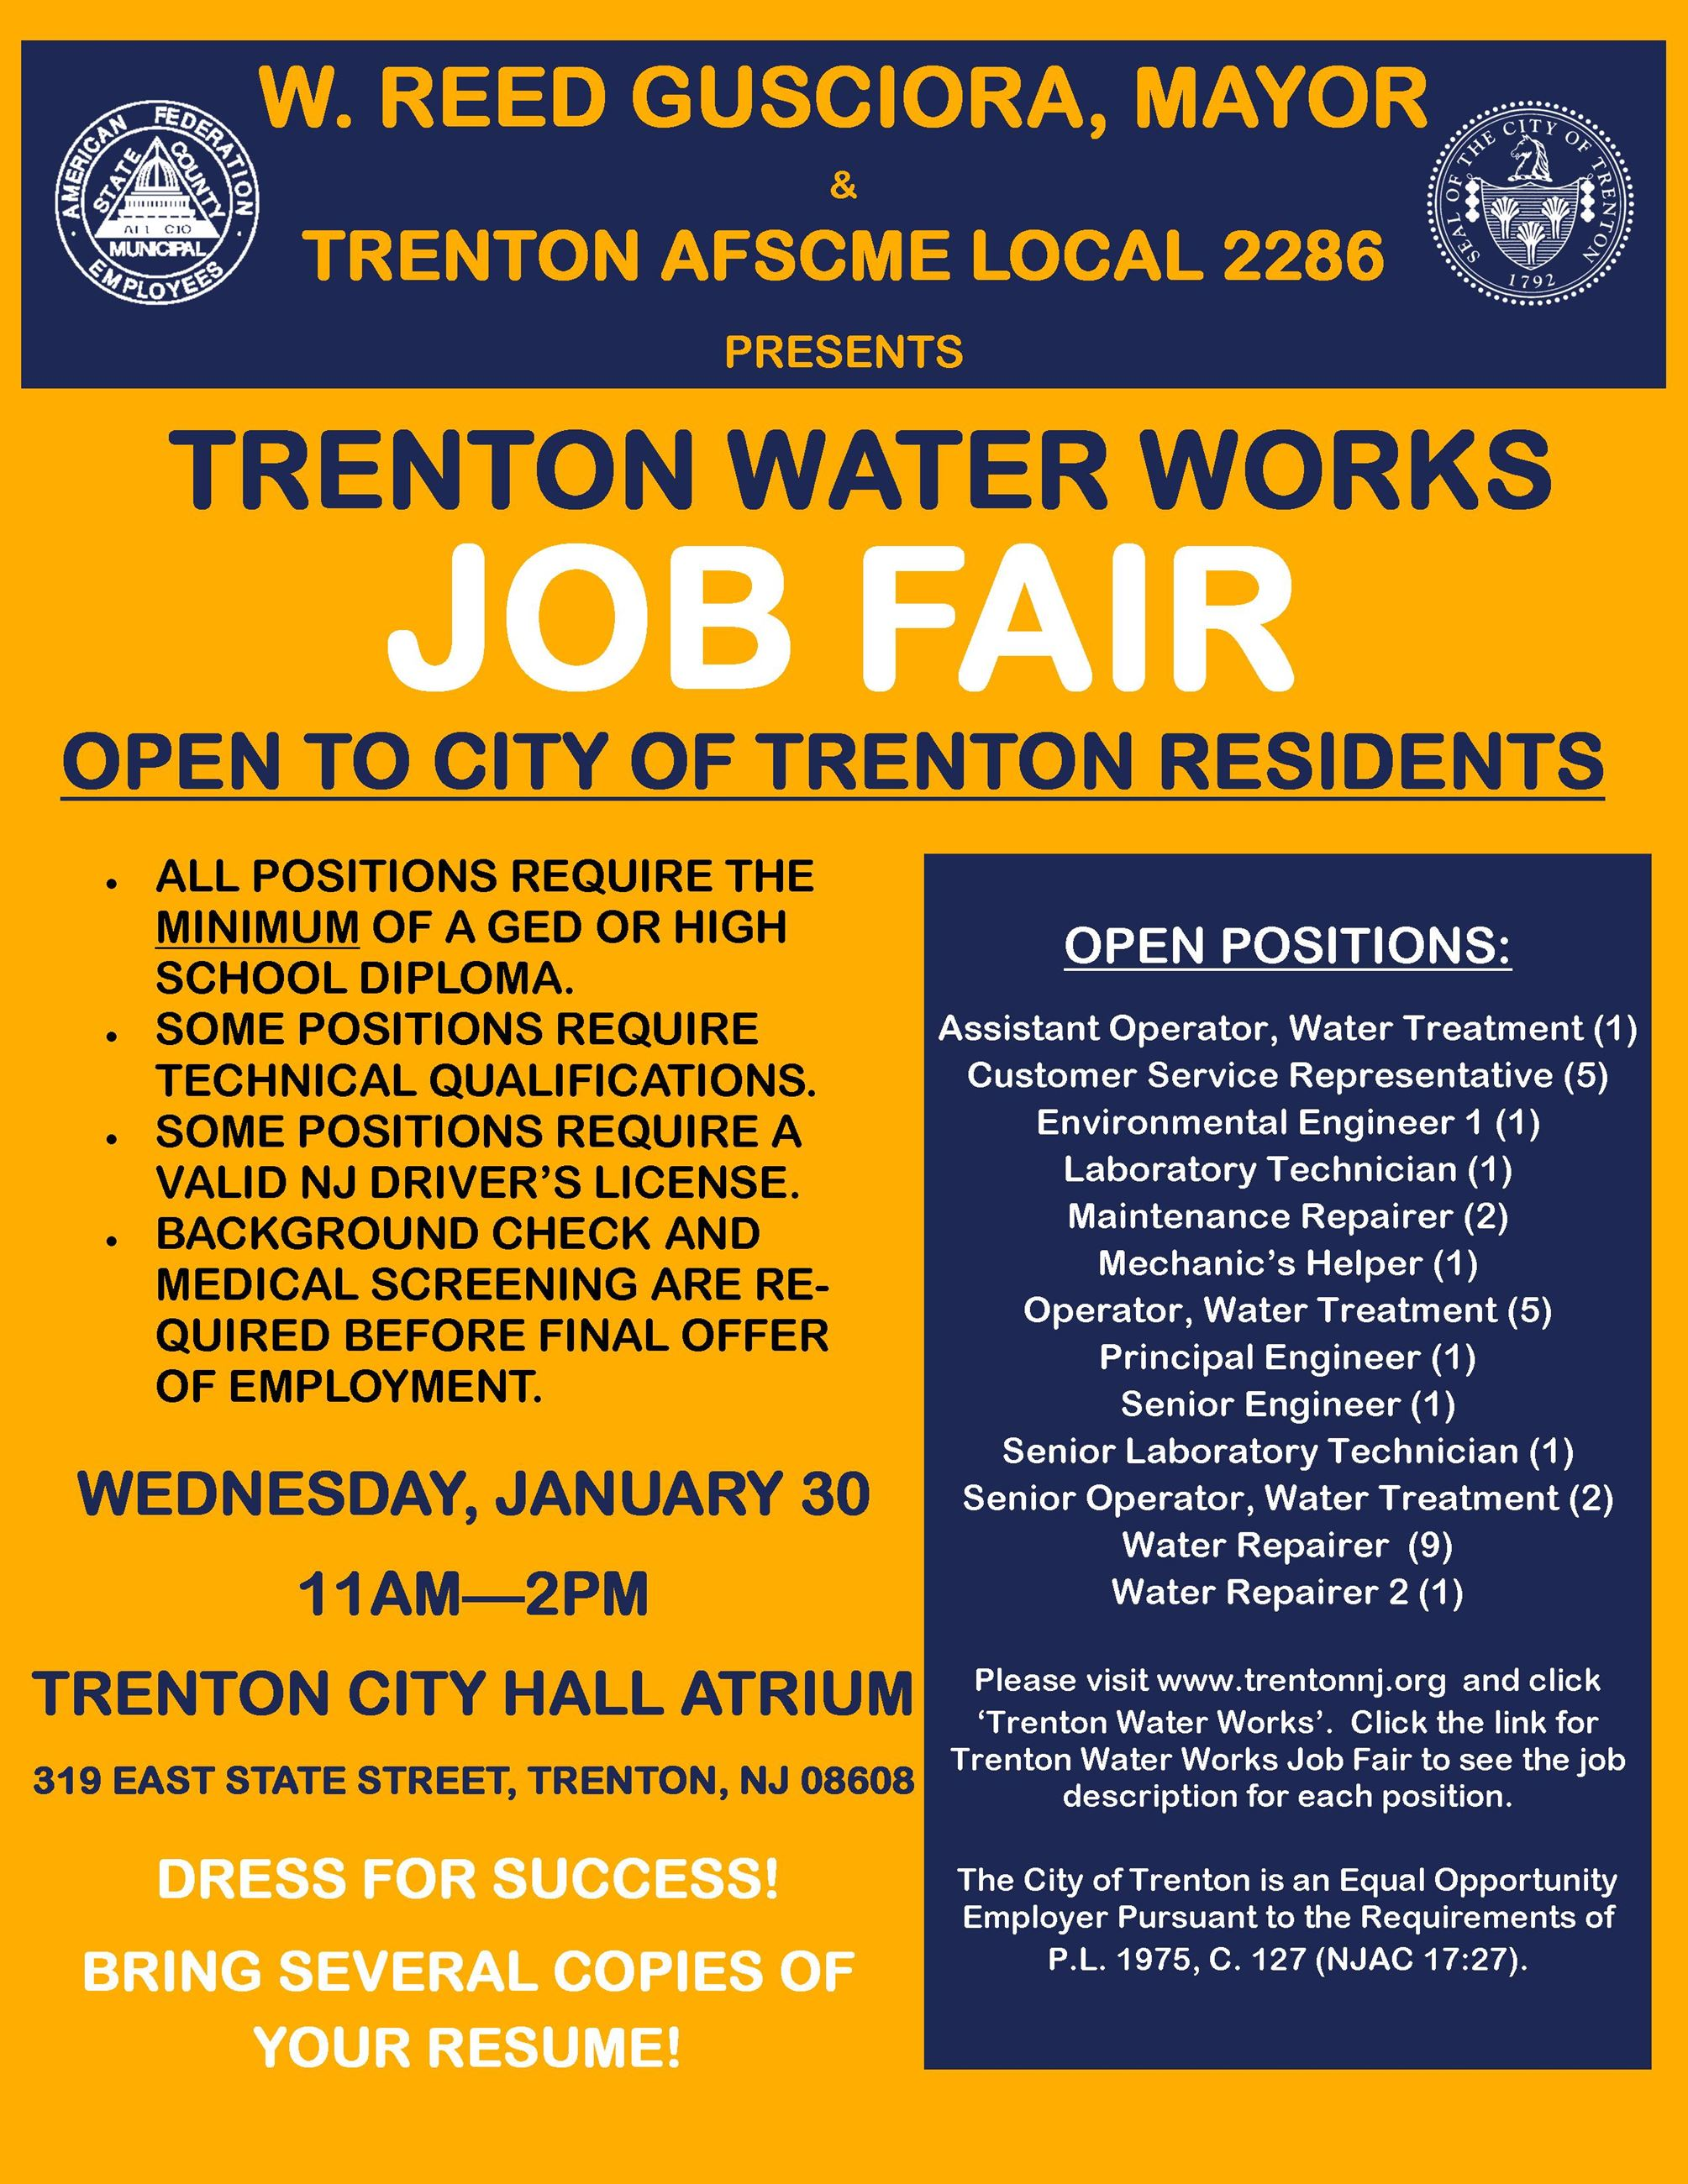 Trenton Water Works Job Fair